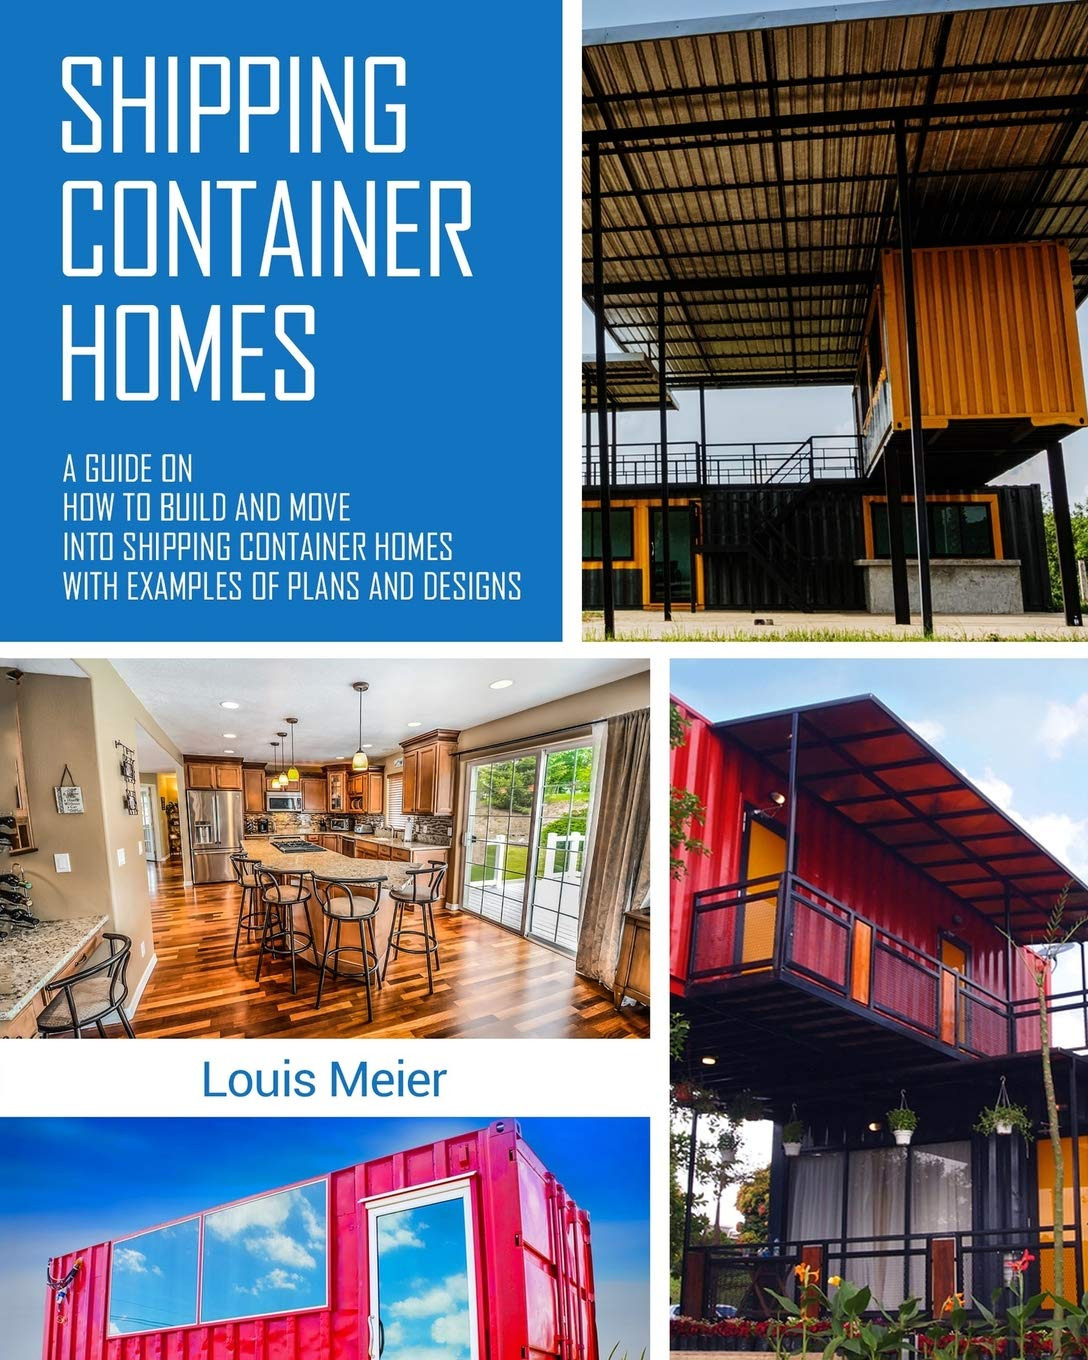 Shipping Container Housing Plans Beautiful Shipping Container Homes A Guide On How to Build and Move